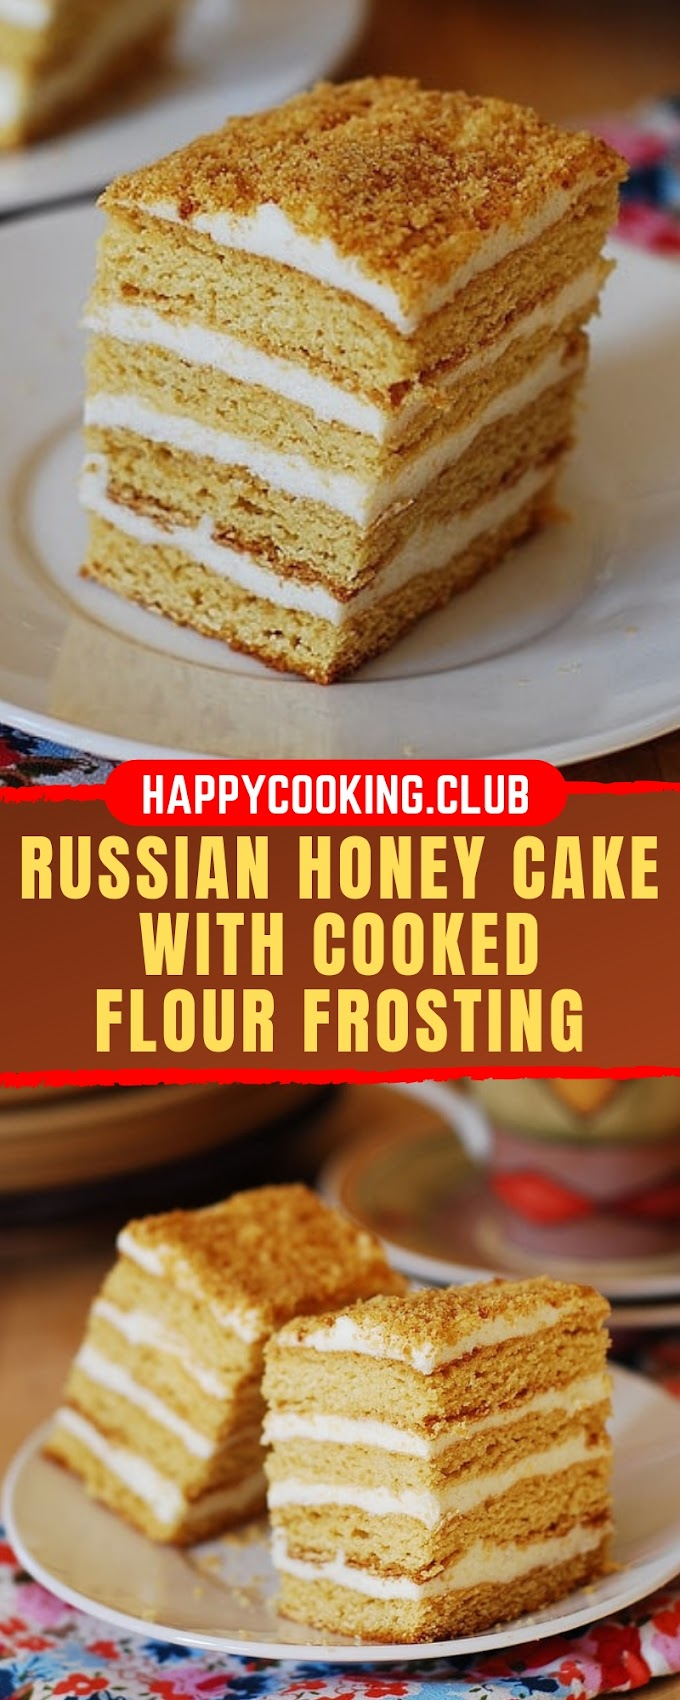 RUSSIAN HONEY CAKE WITH COOKED FLOUR FROSTING-Medovik